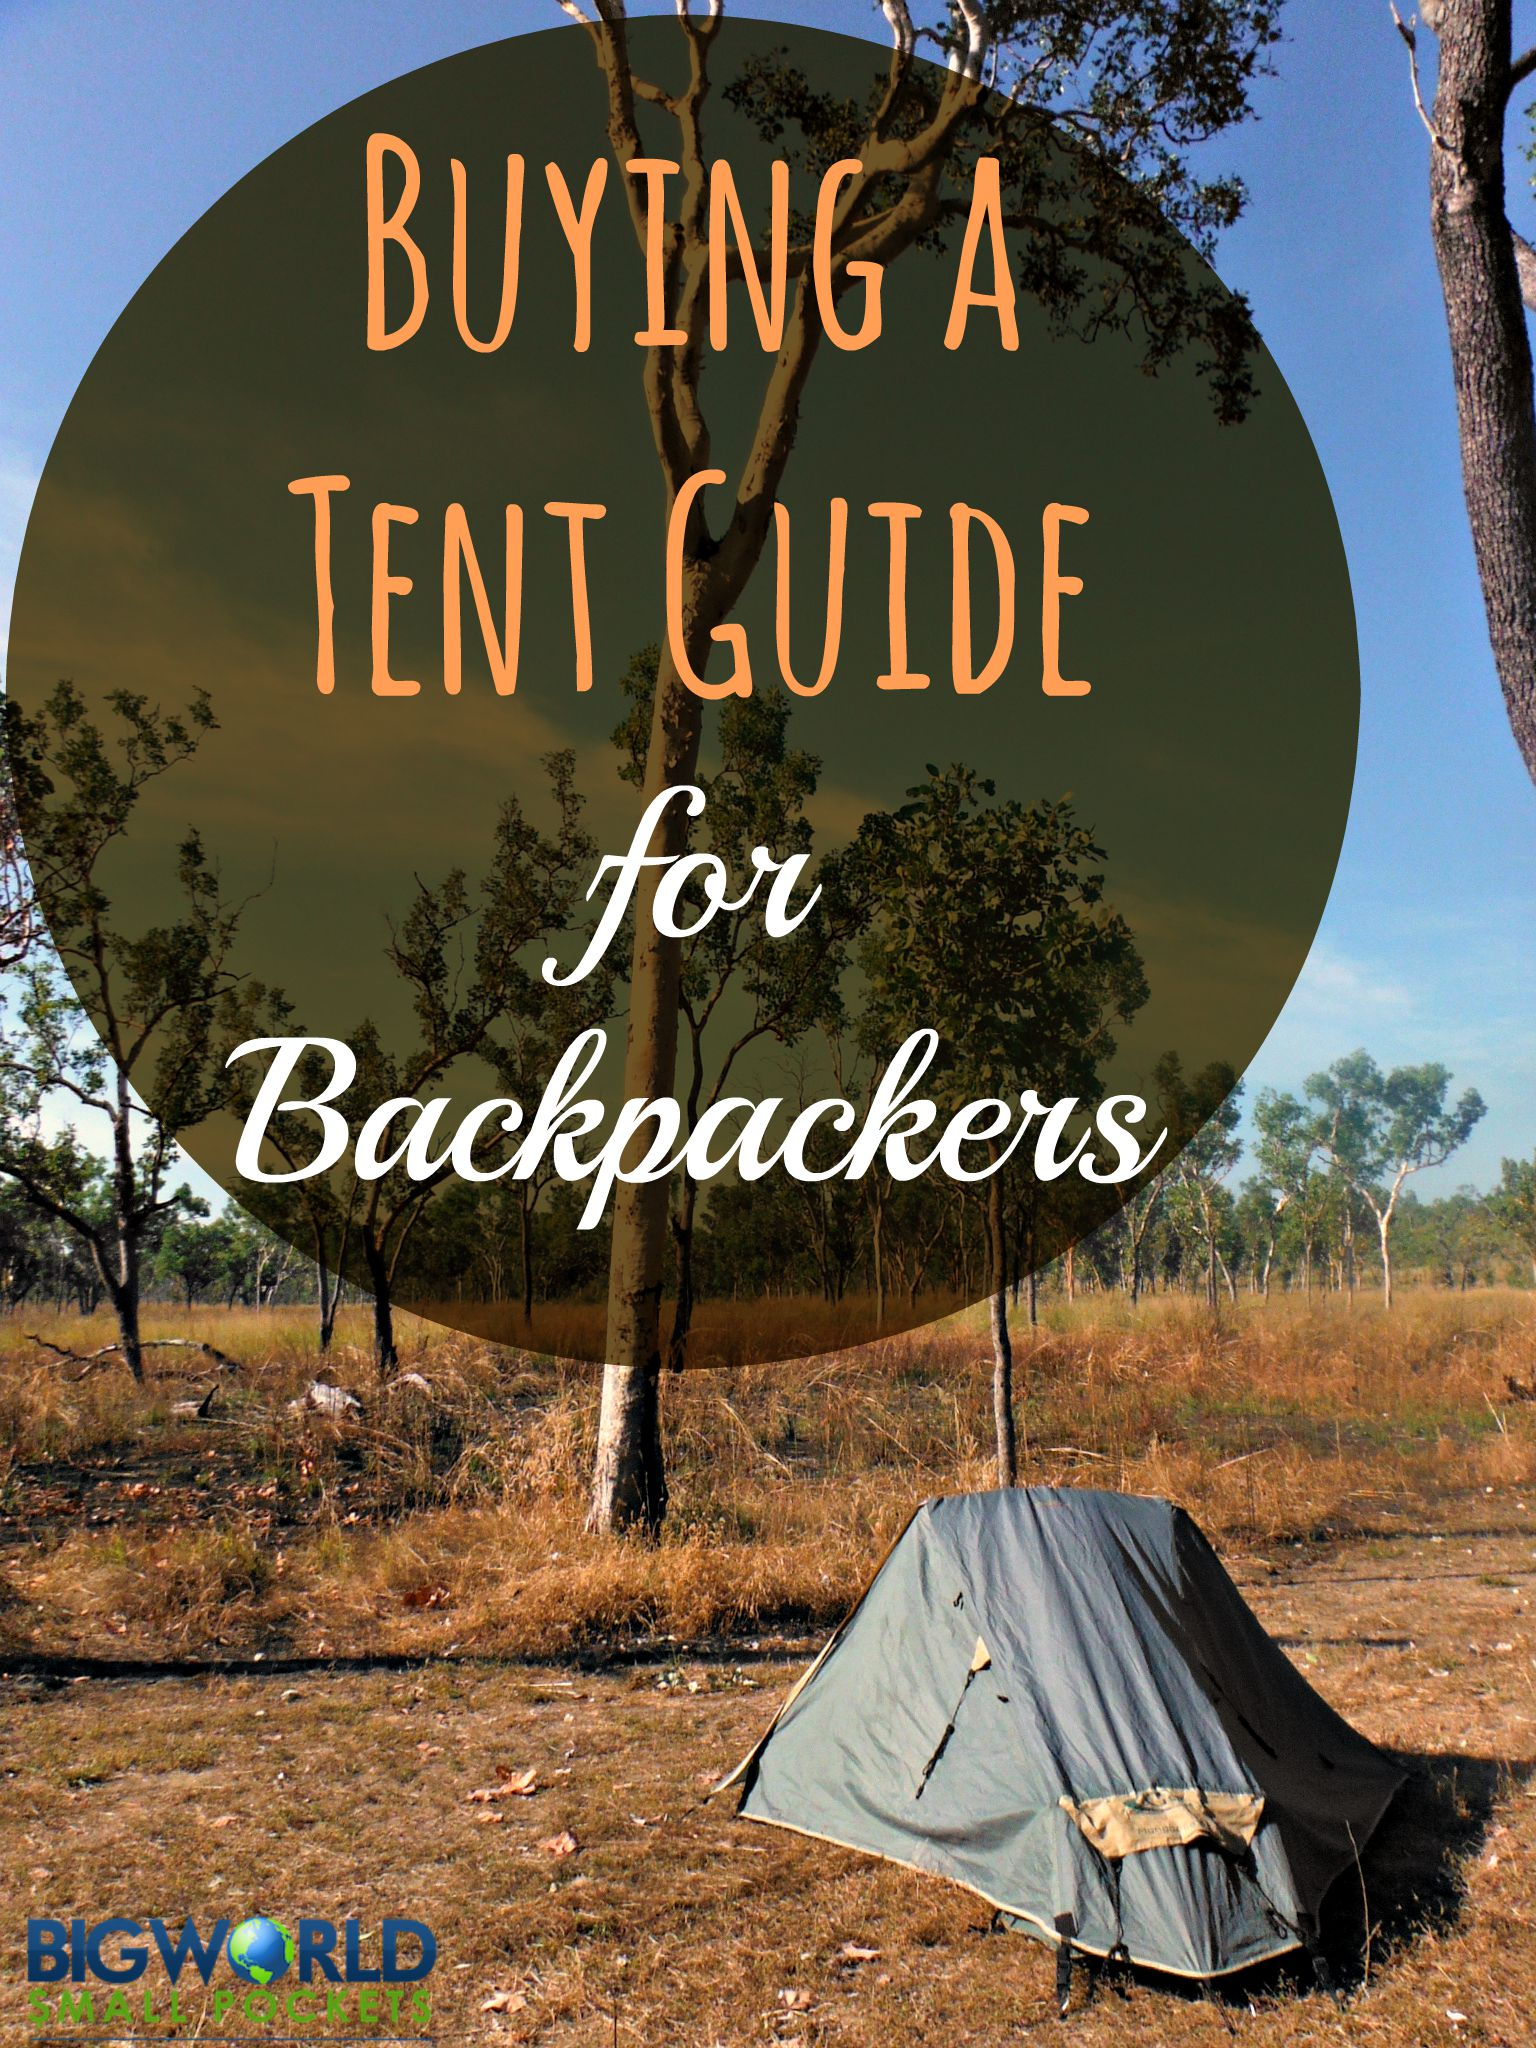 Buying a Tent Guide for Backpackers